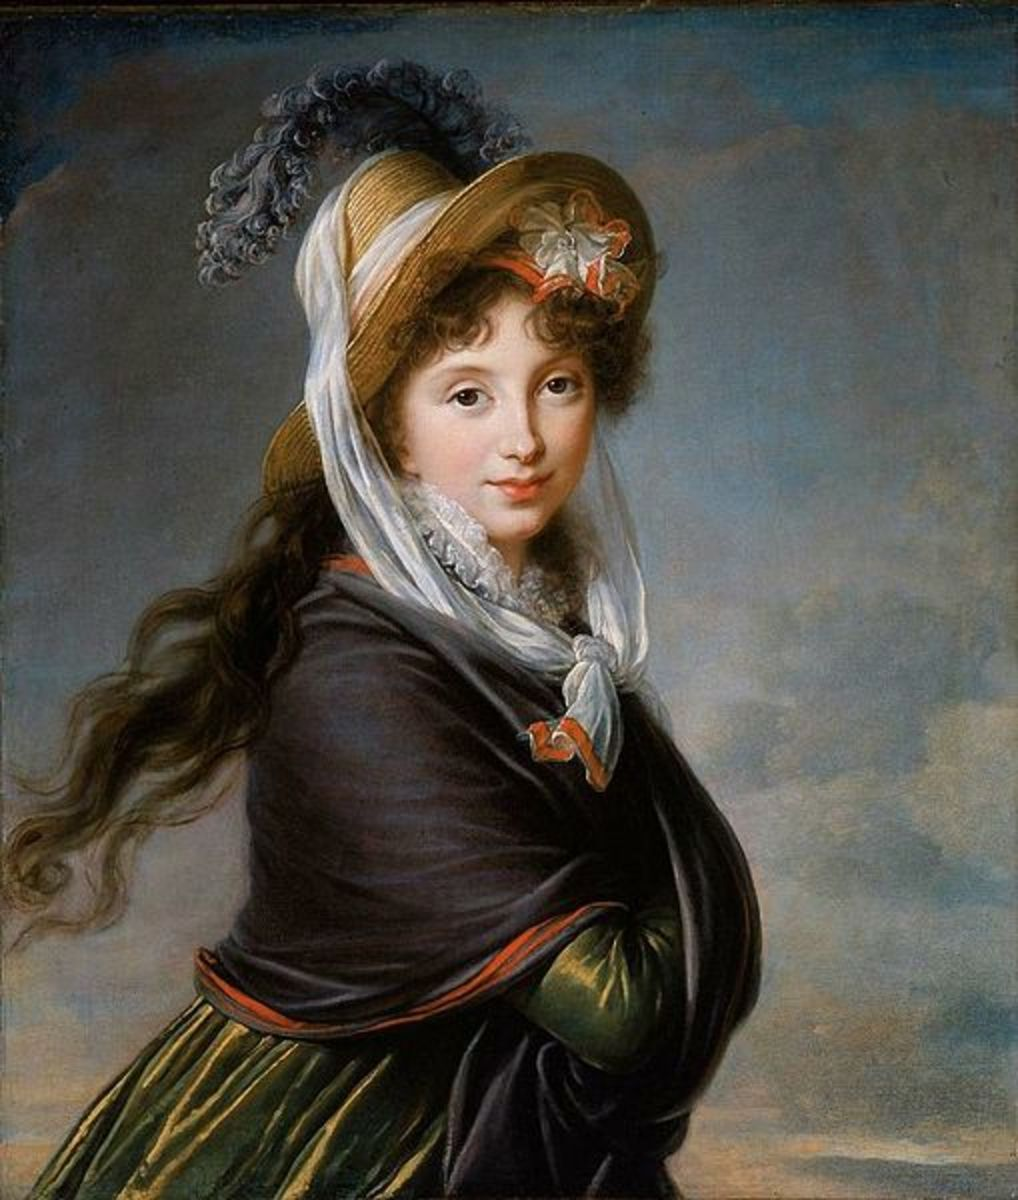 Portrait of a Young Woman is in the public domain in the United States and those countries with a copyright term of life of the author plus 100 years or less.